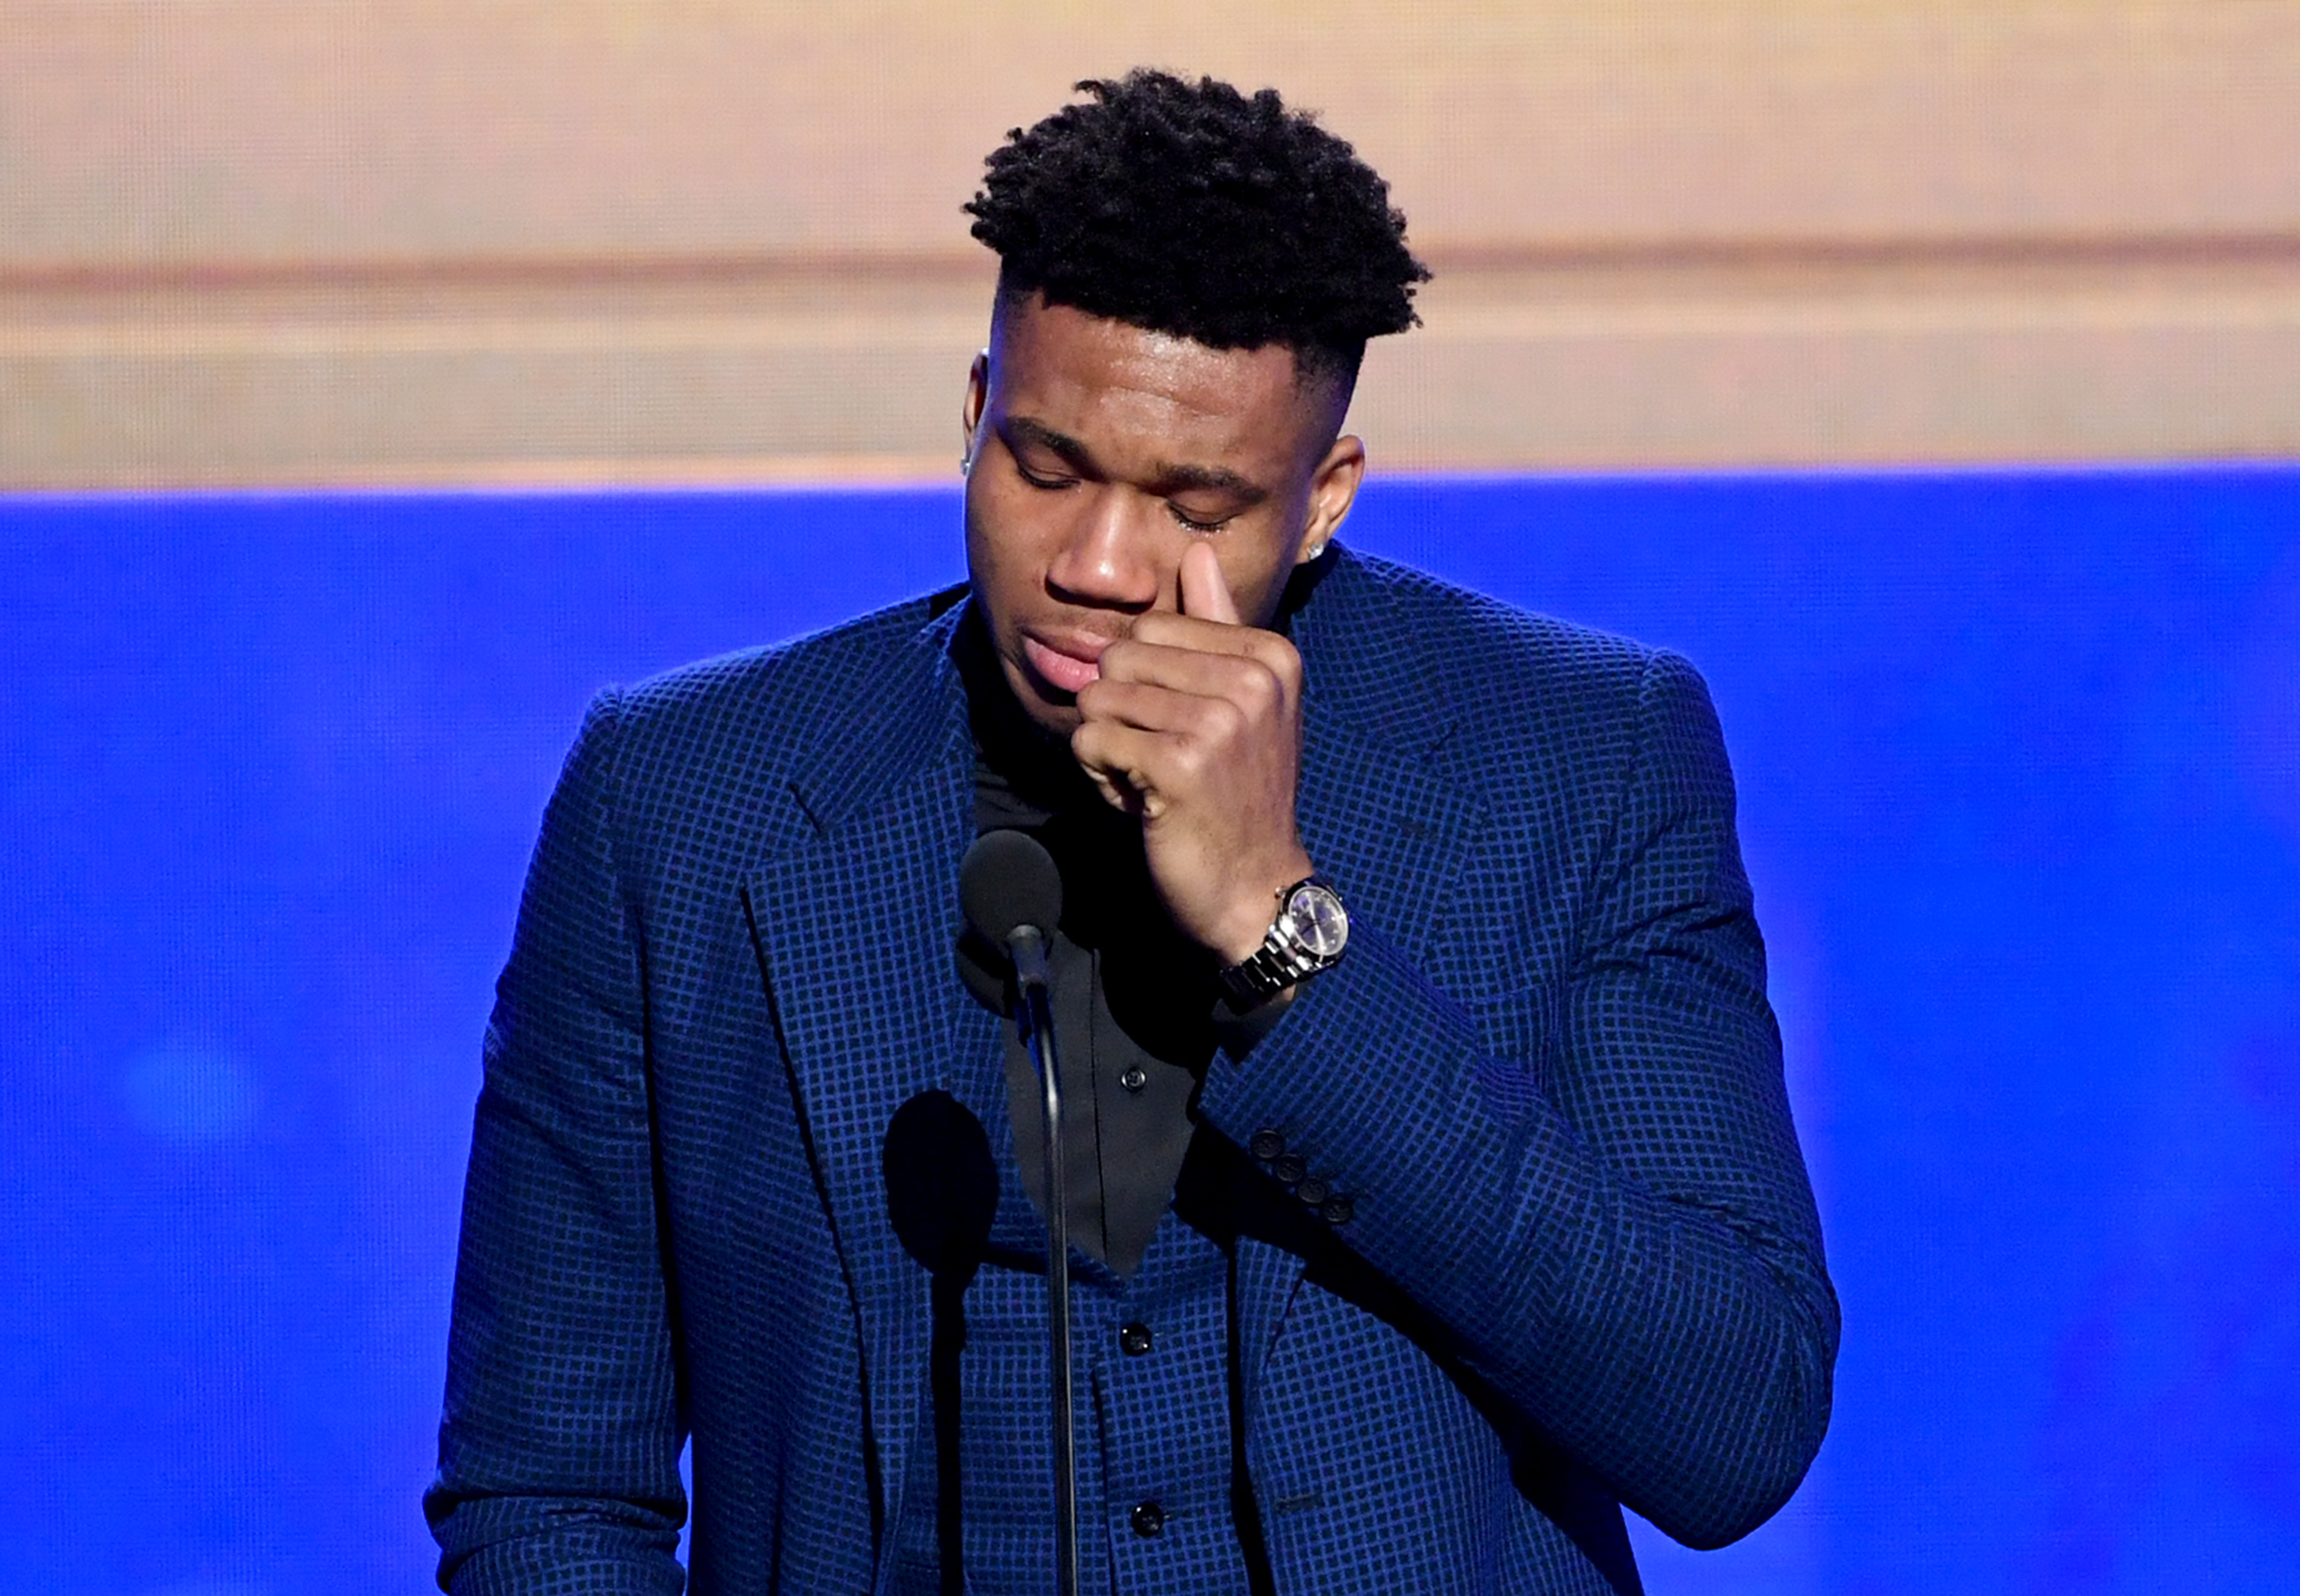 Giannis Antetokounmpo Wins Nba Mvp Award Completing Rise From Unknown To Superstar The Washington Post